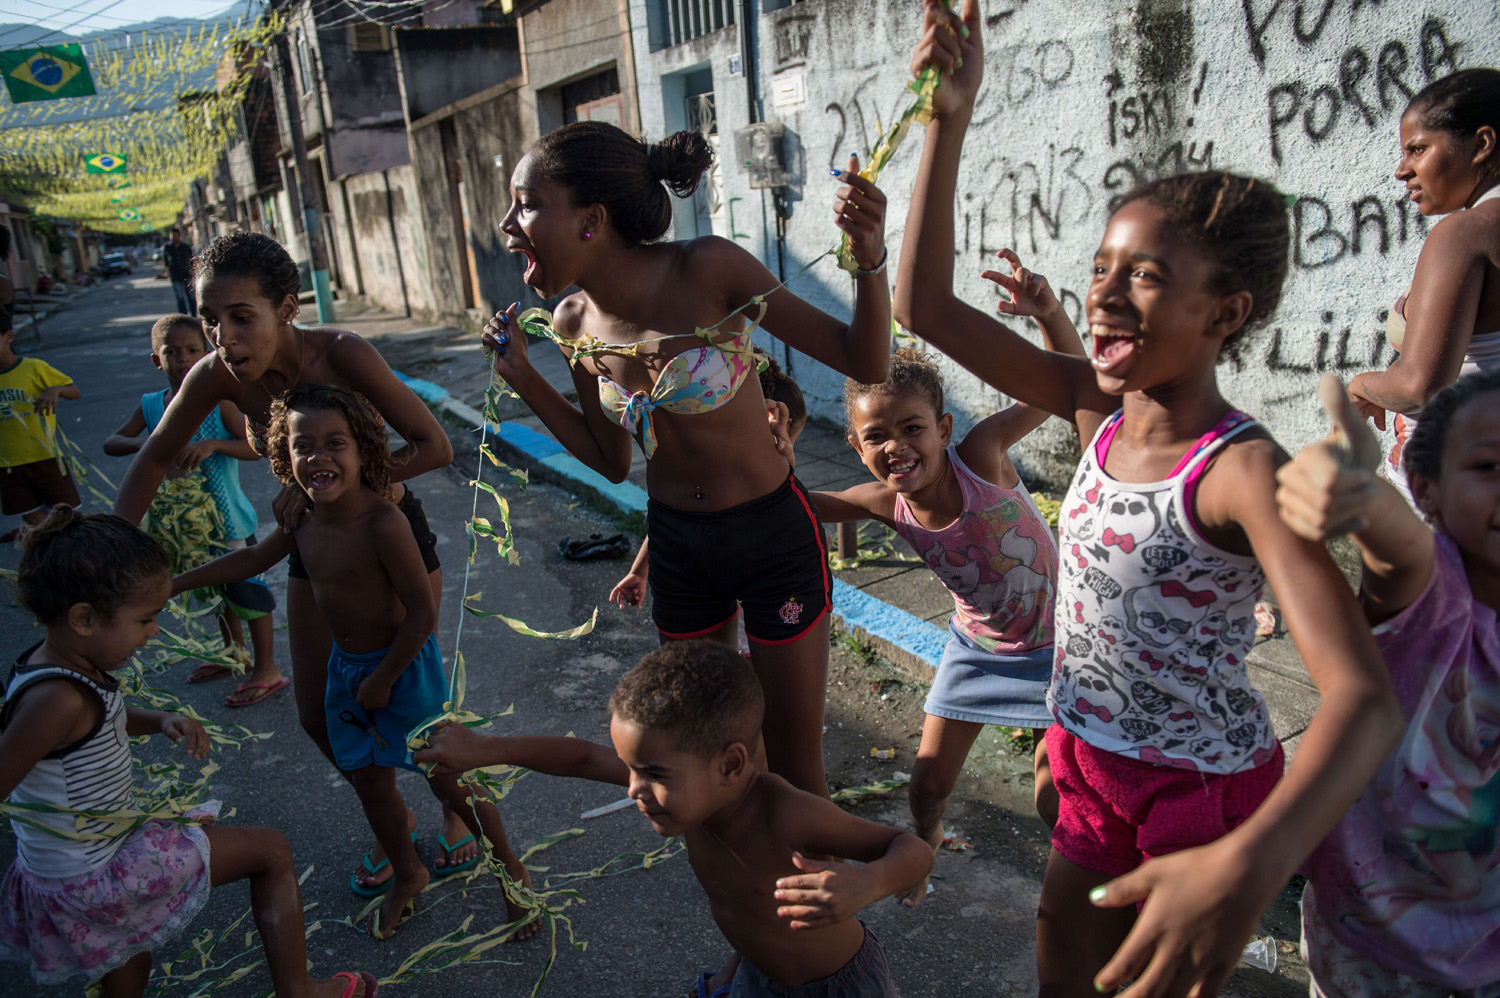 Girls help help to decorate a street for the FIFA World Cup 2014 on the eve of the opening event in Rio de Janeiro on June 11, 2014.